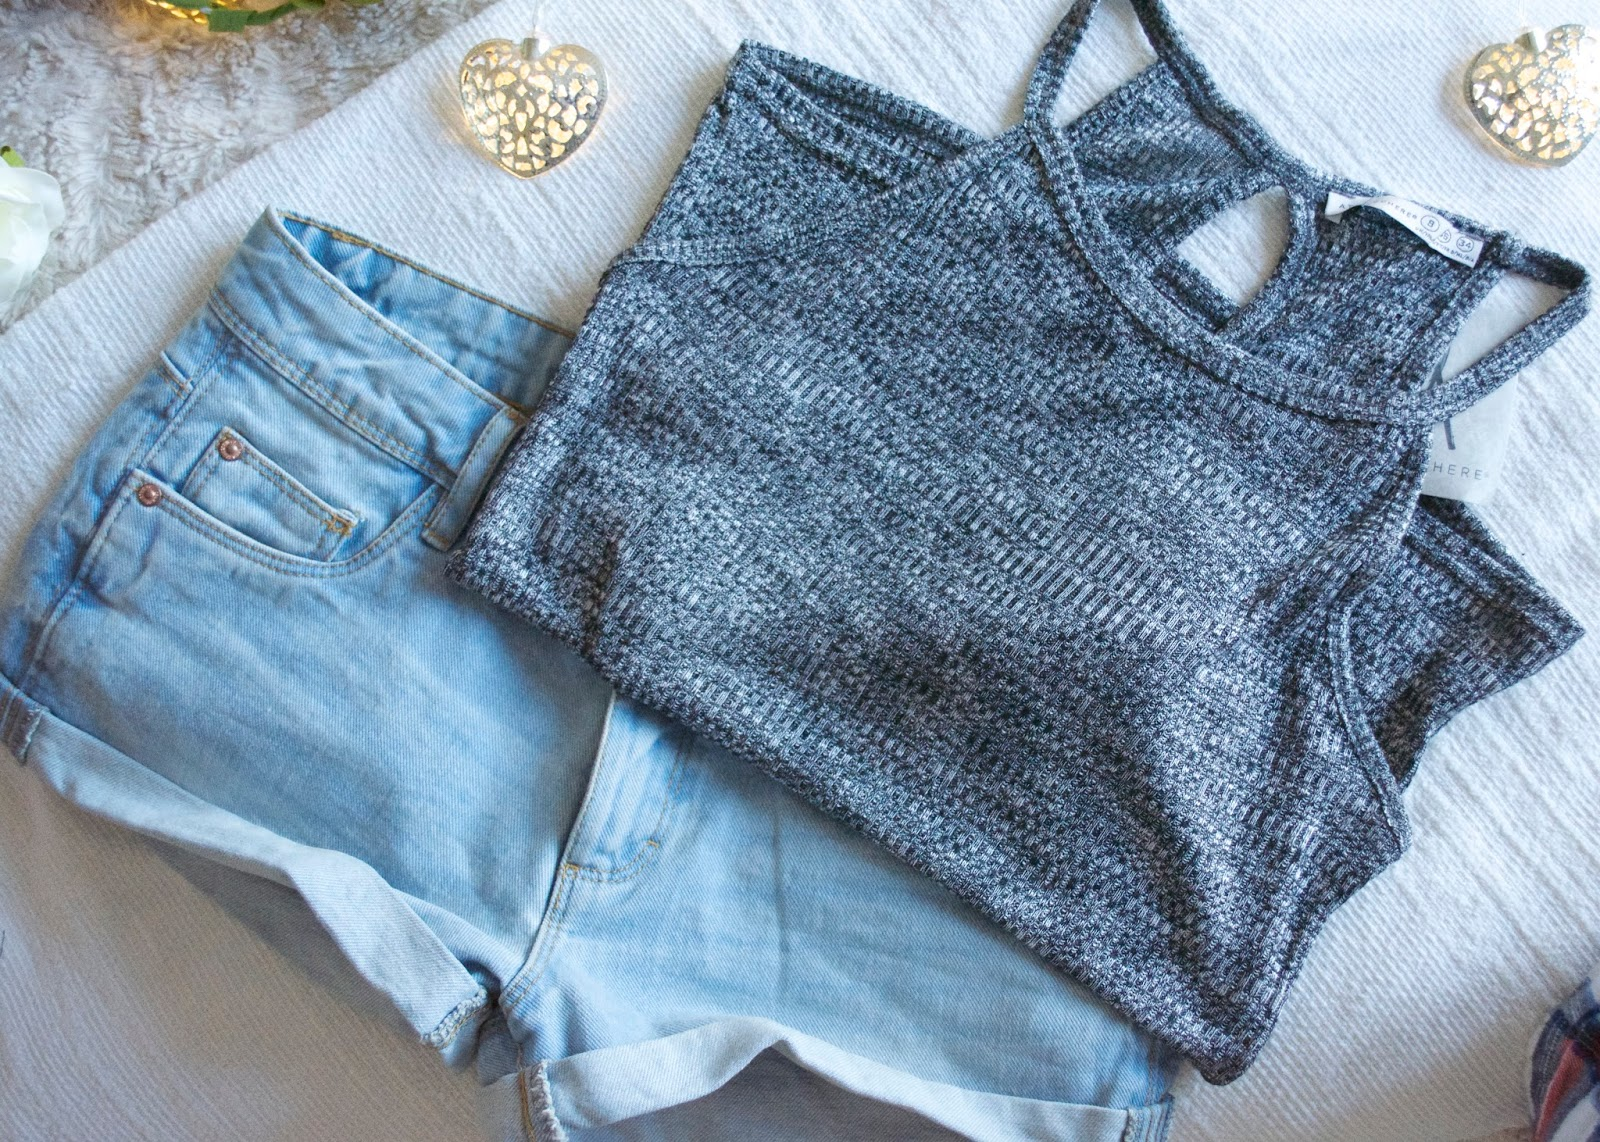 Primark Haul, Primark Denim Shorts, Denim Shorts, Knitted Grey Top, Primark